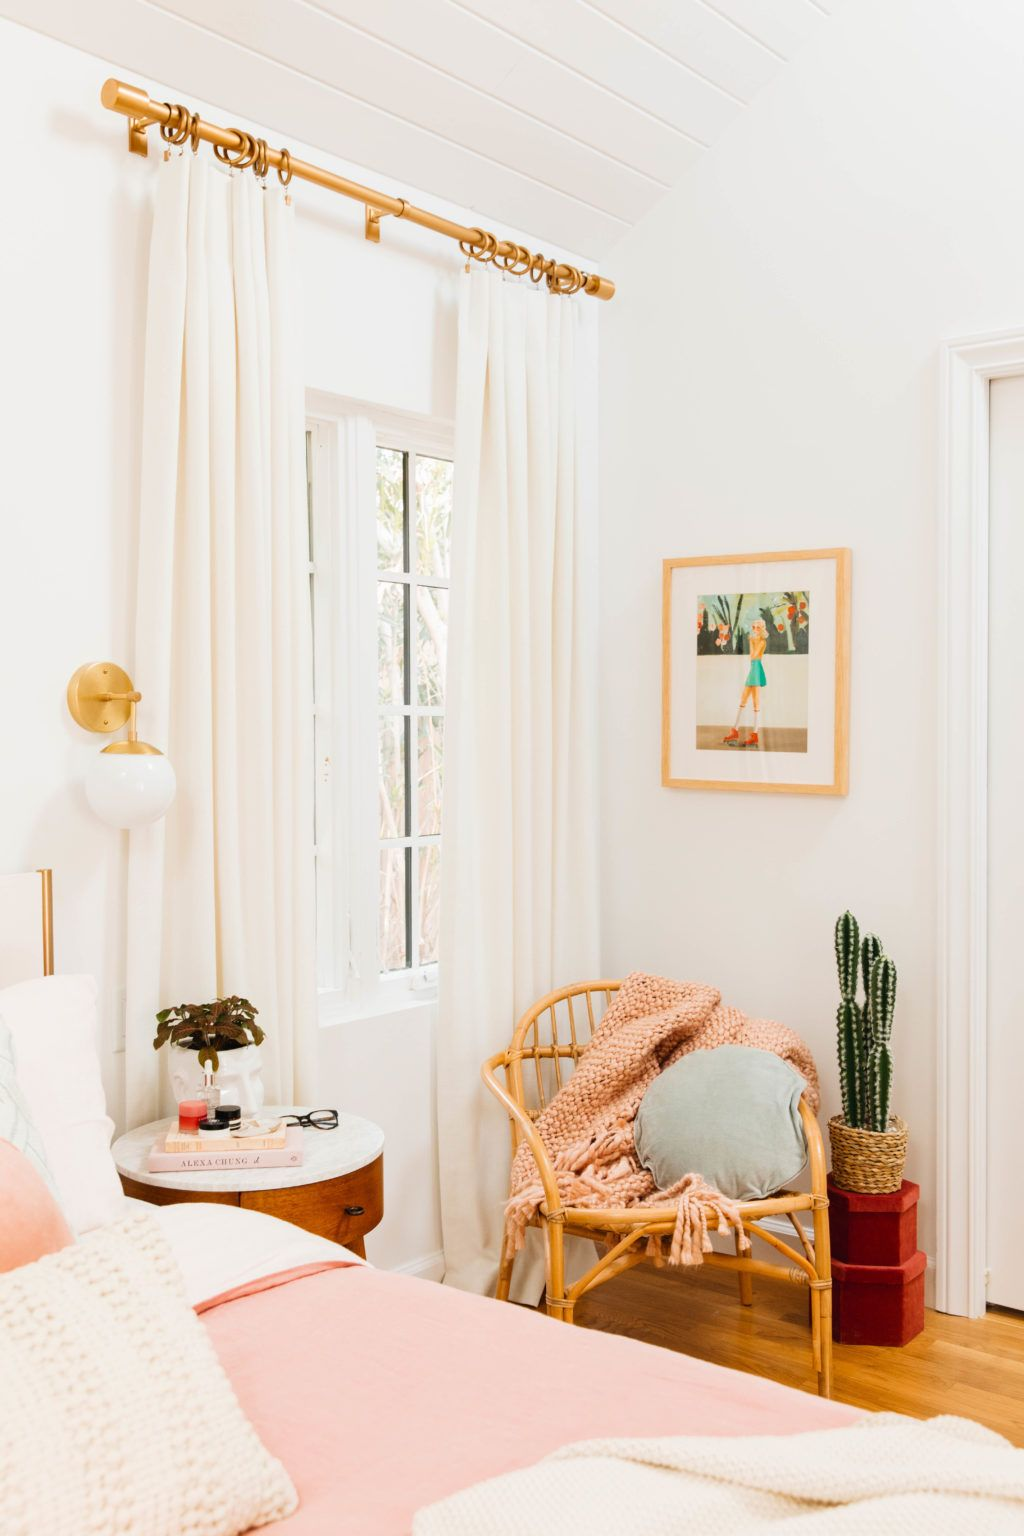 Our Blush Master Bedroom Reveal